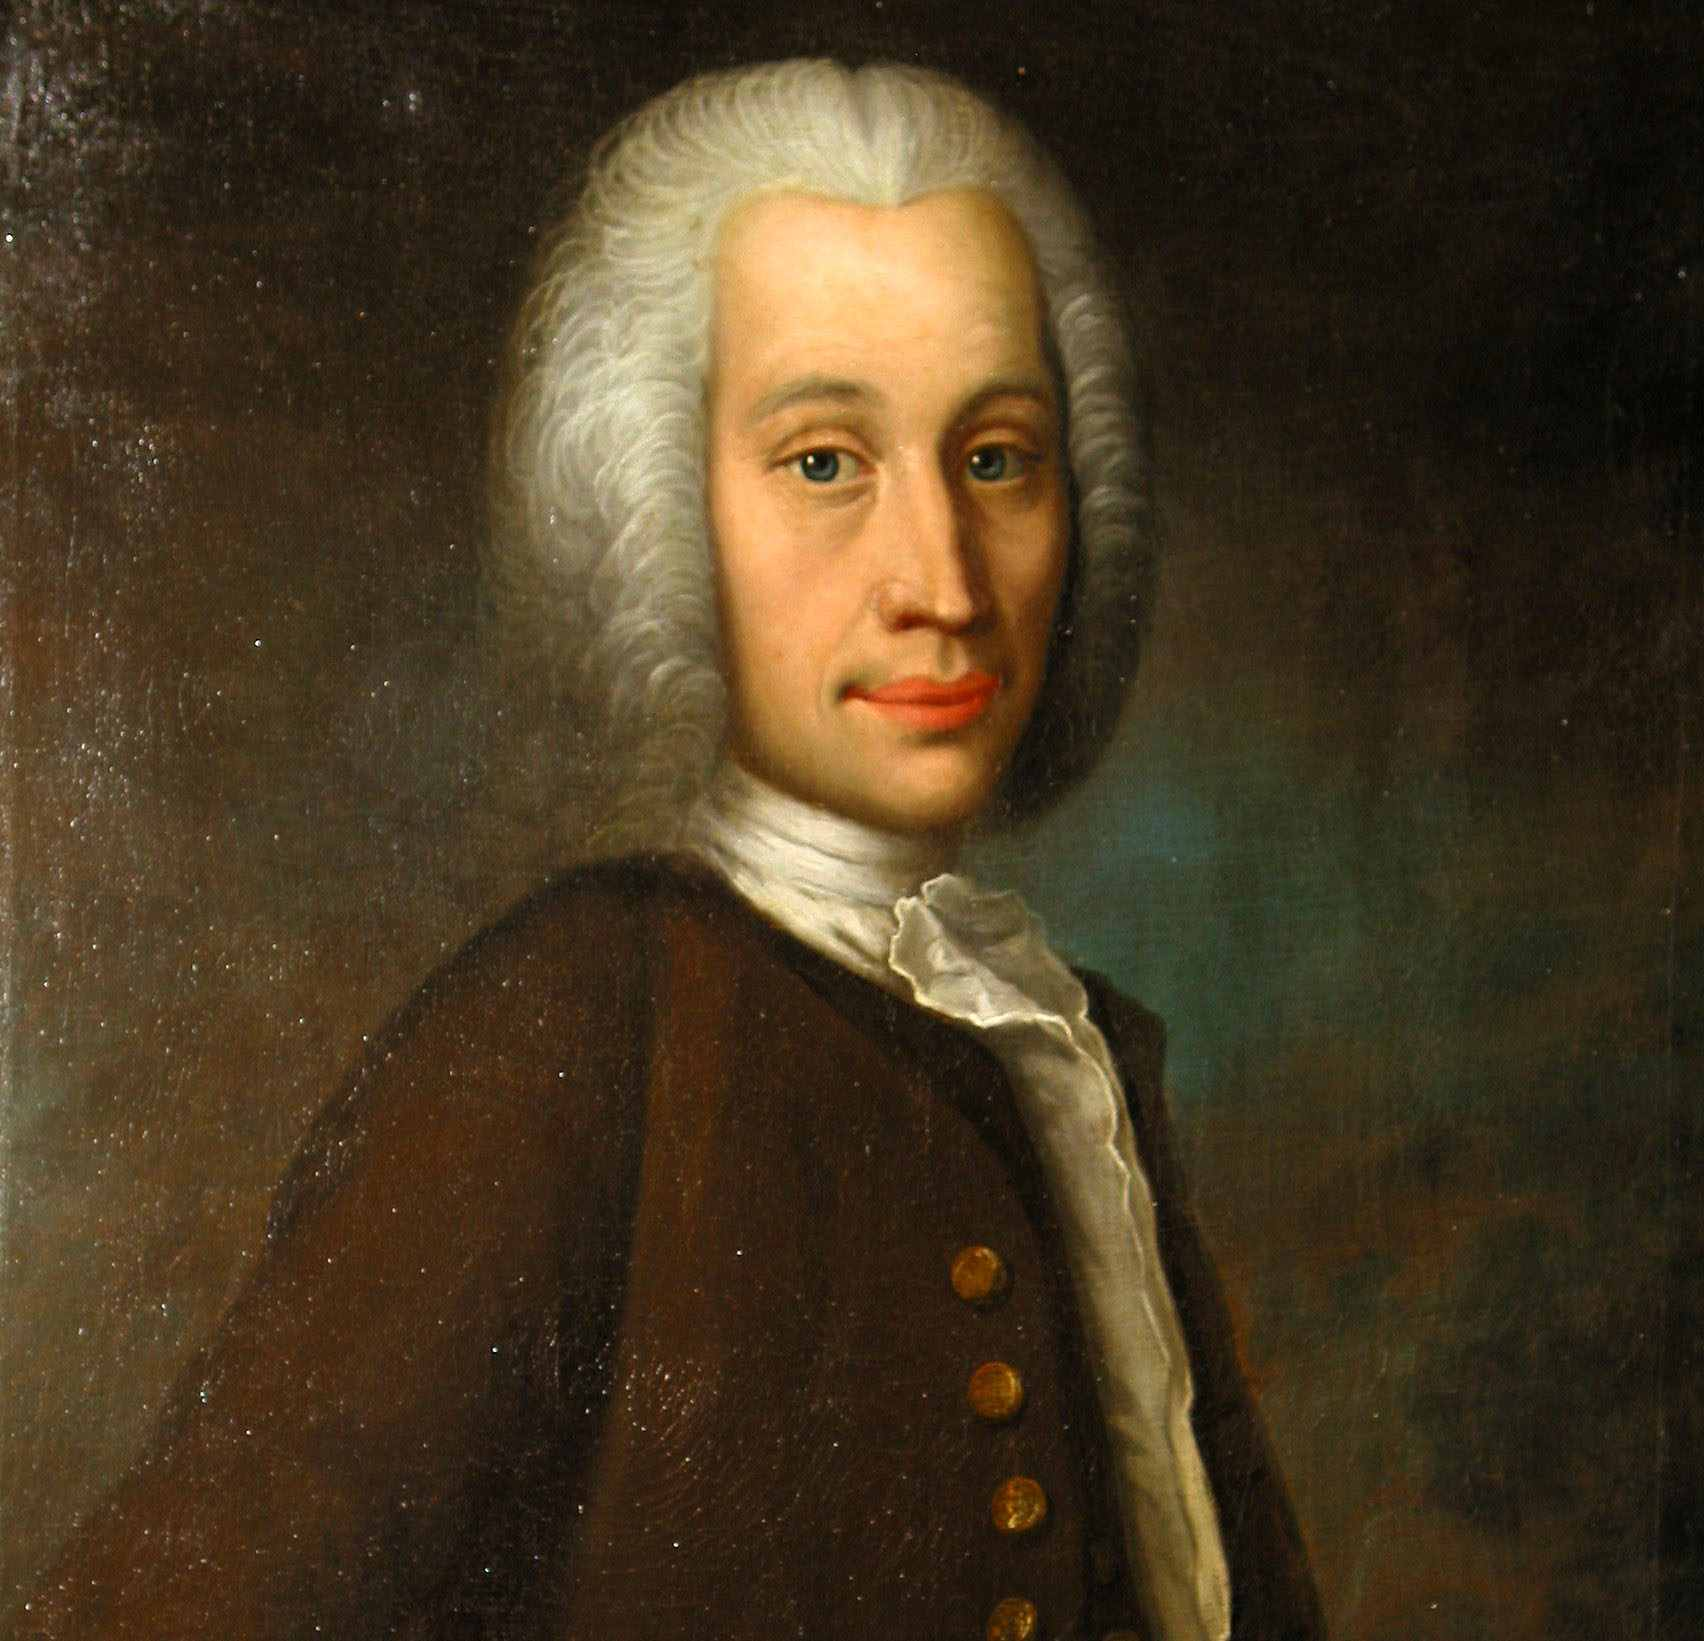 Anders Celsius portrait in full color.